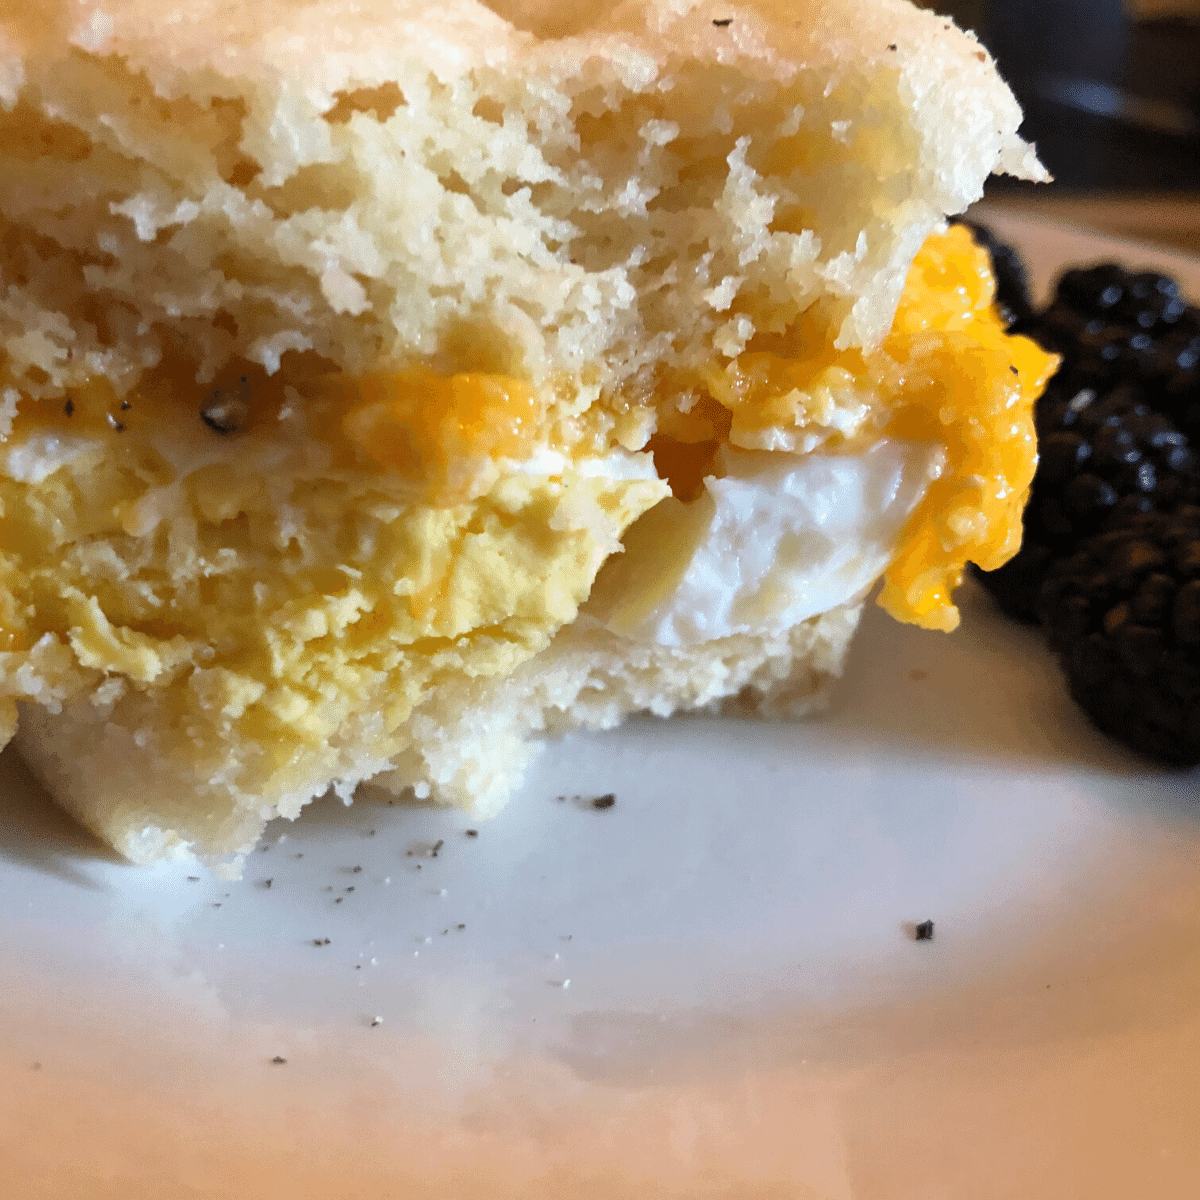 Keto Egg McMuffin recipe 5 minutes